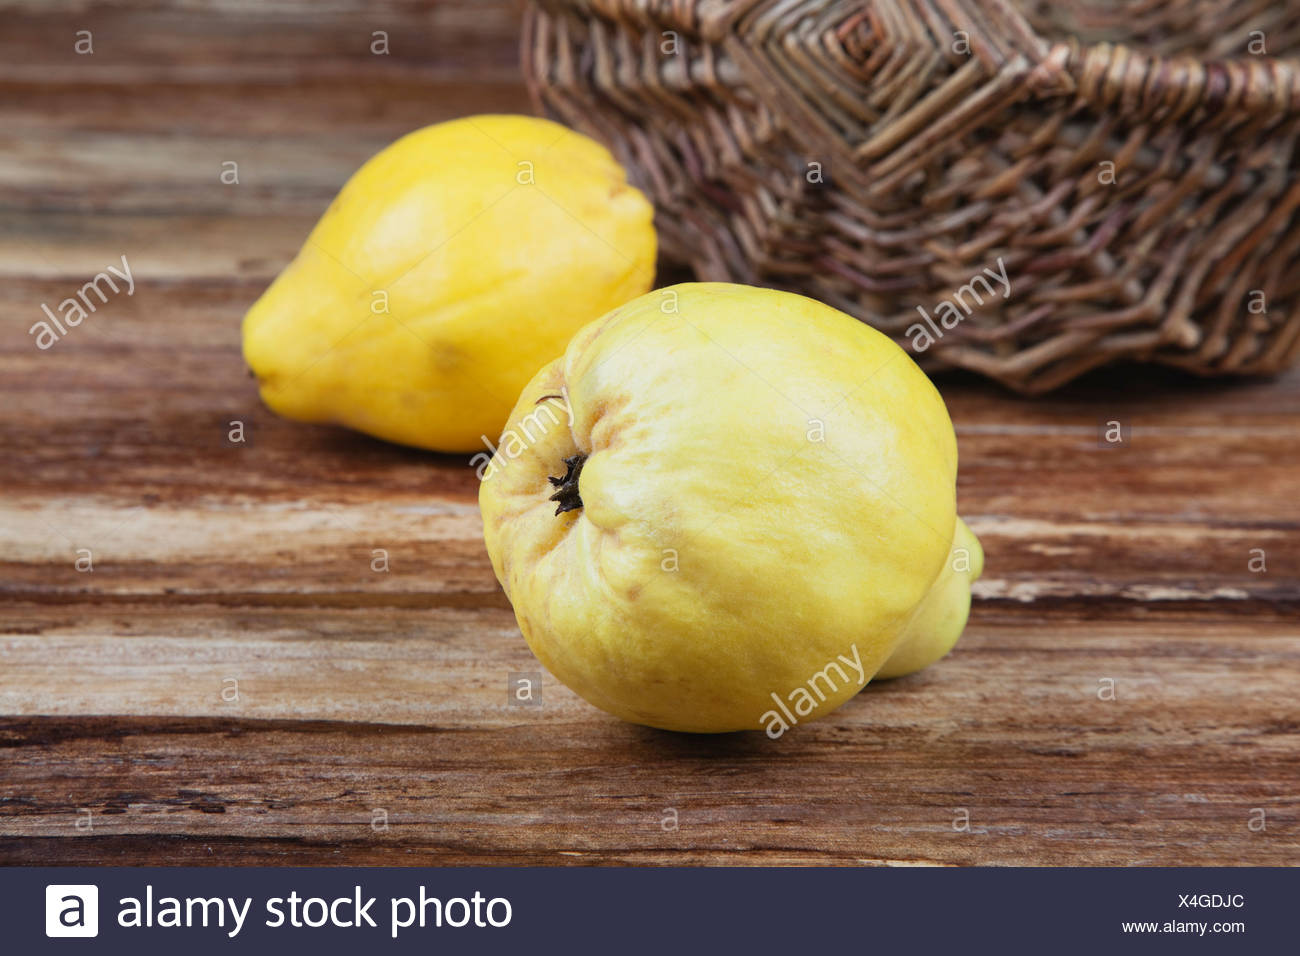 Quince on wooden table, close up Stock Photo